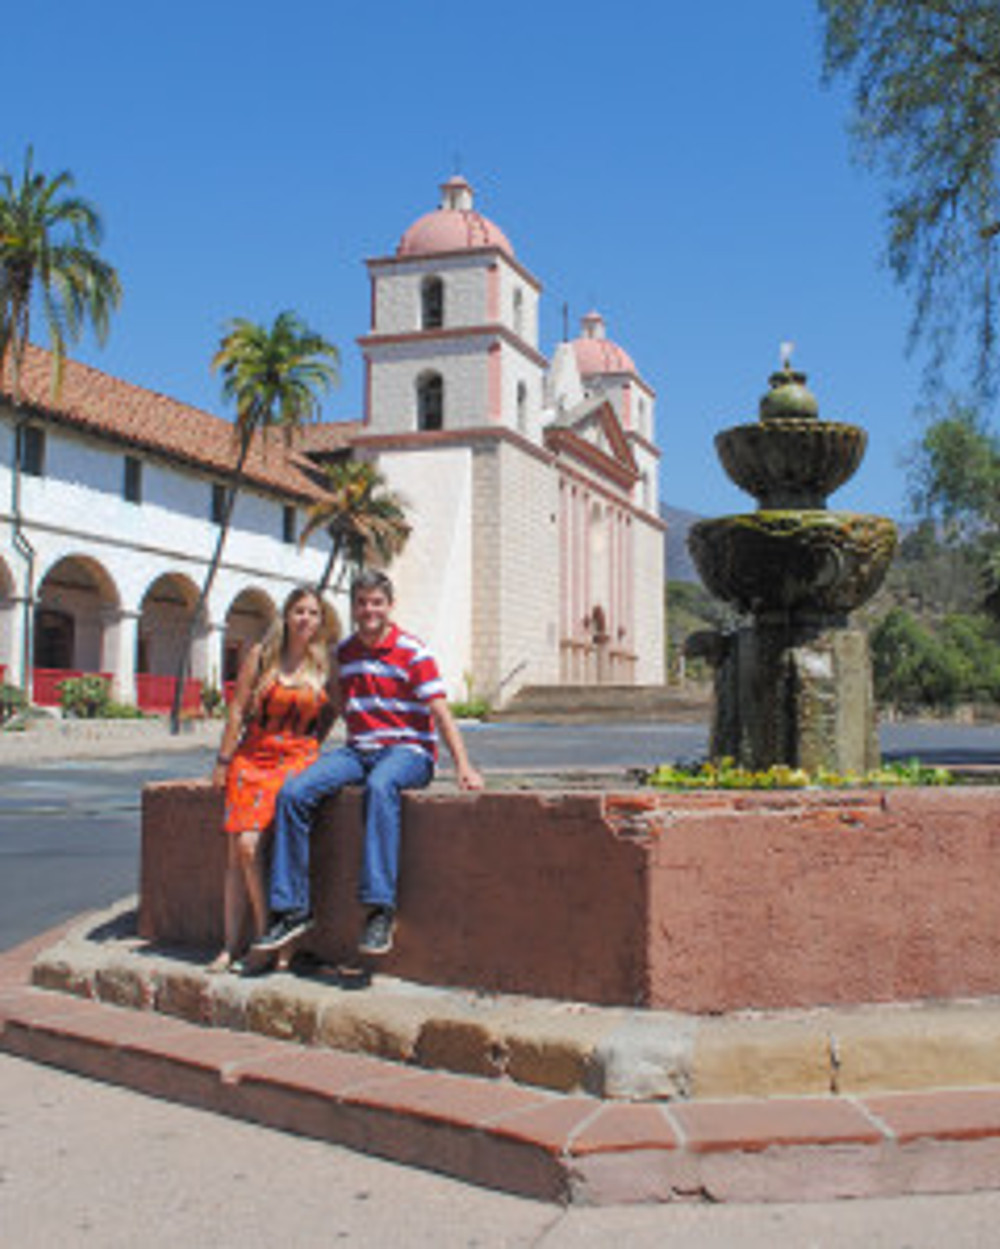 Mabel Cobo Hernando with her husband Jesus at Old Mission Santa Barbara on the day following her lecture. Alex Grzywacki.